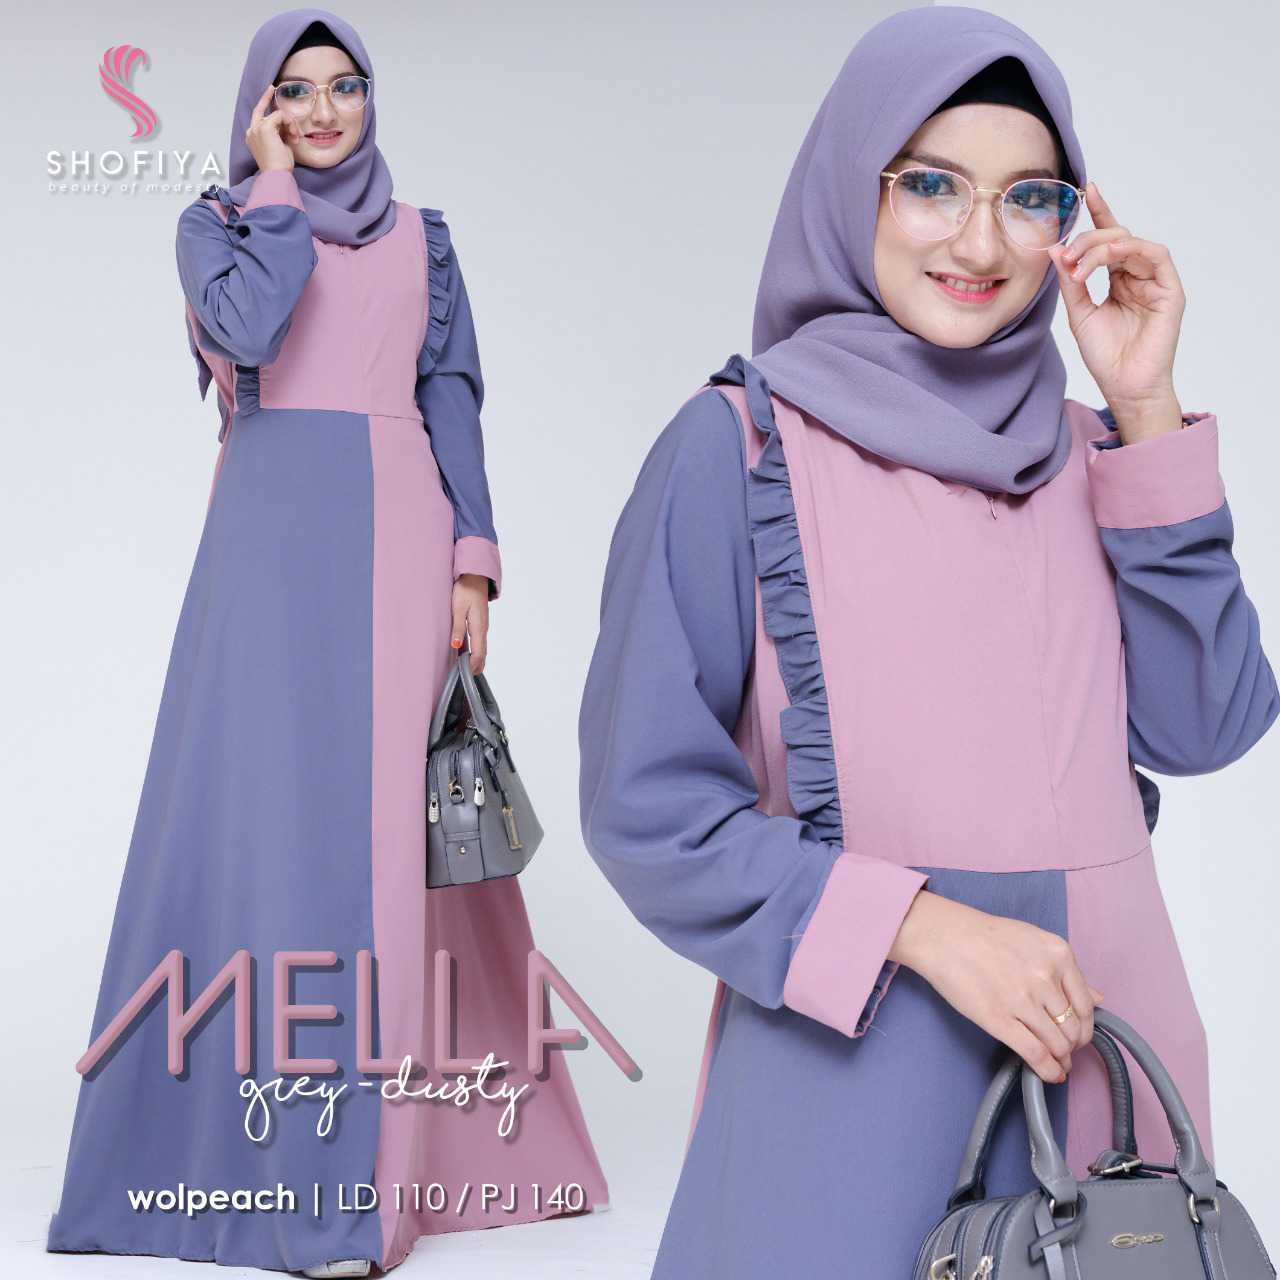 Gamis modern mella grey dusty